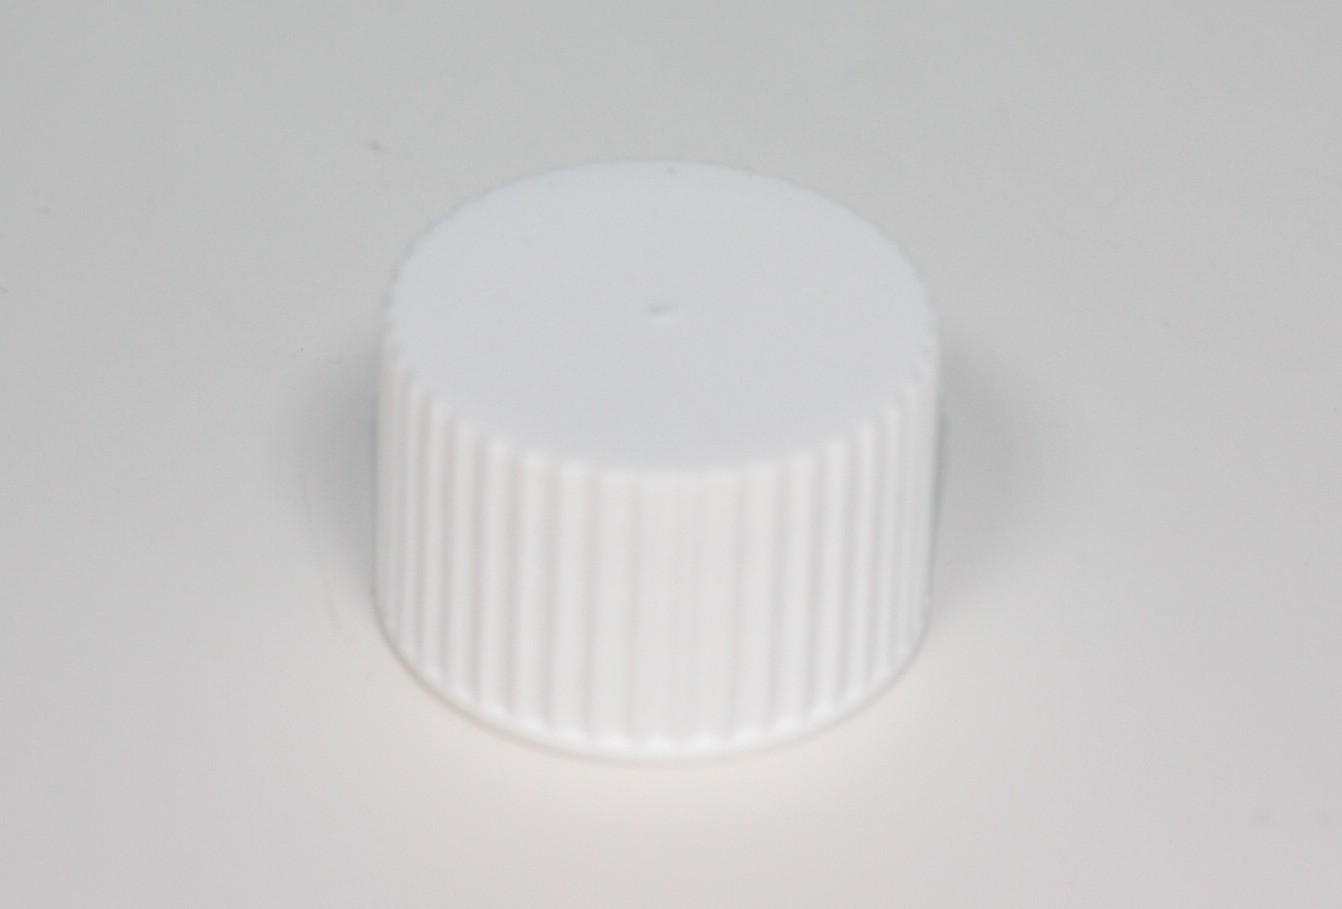 28mm 410 RIBBED CAP WADDED WHITE